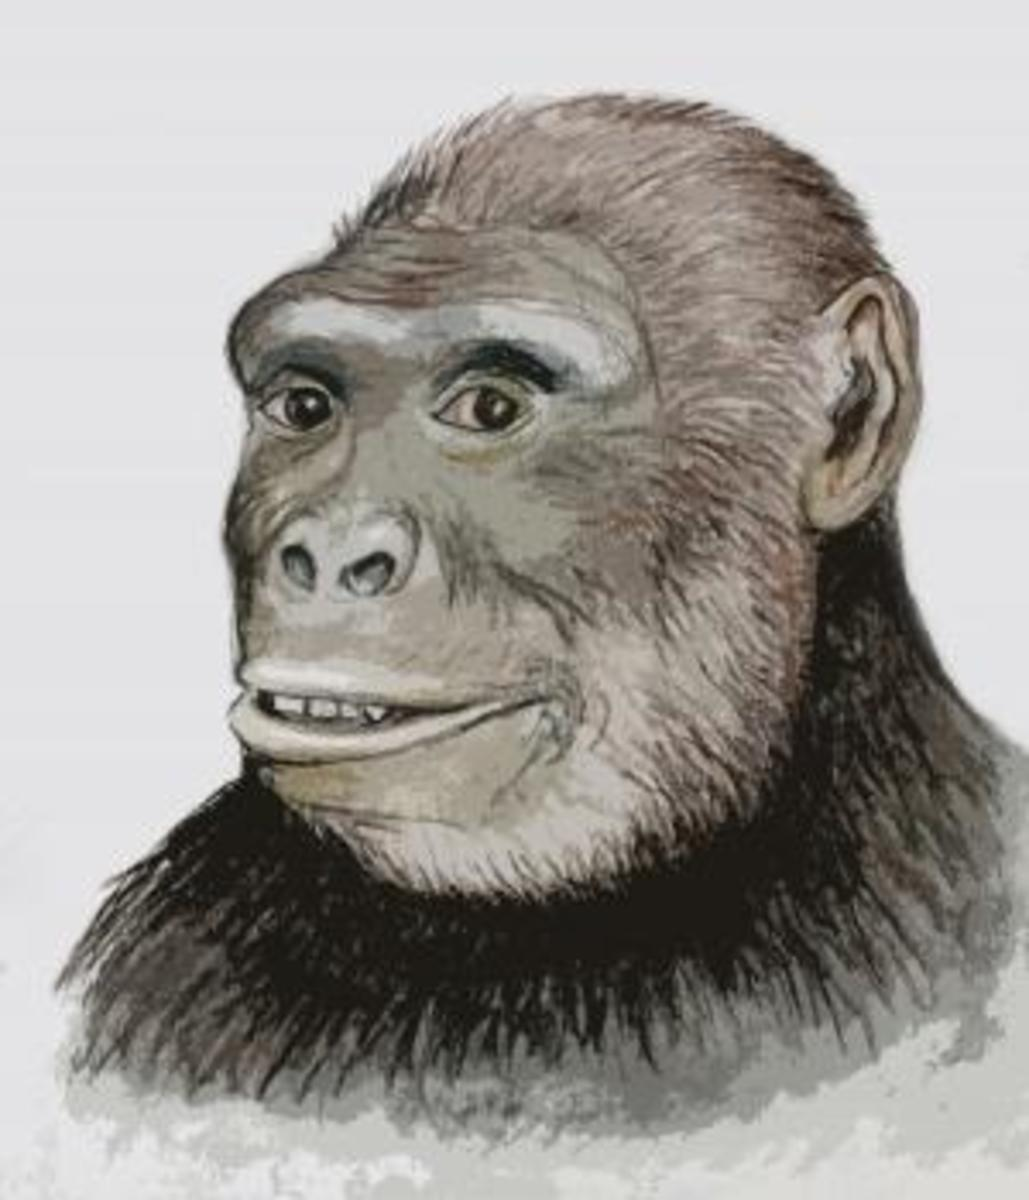 head sketch is by Assen Ignatov of the Bulgarian National Museum of Natural History